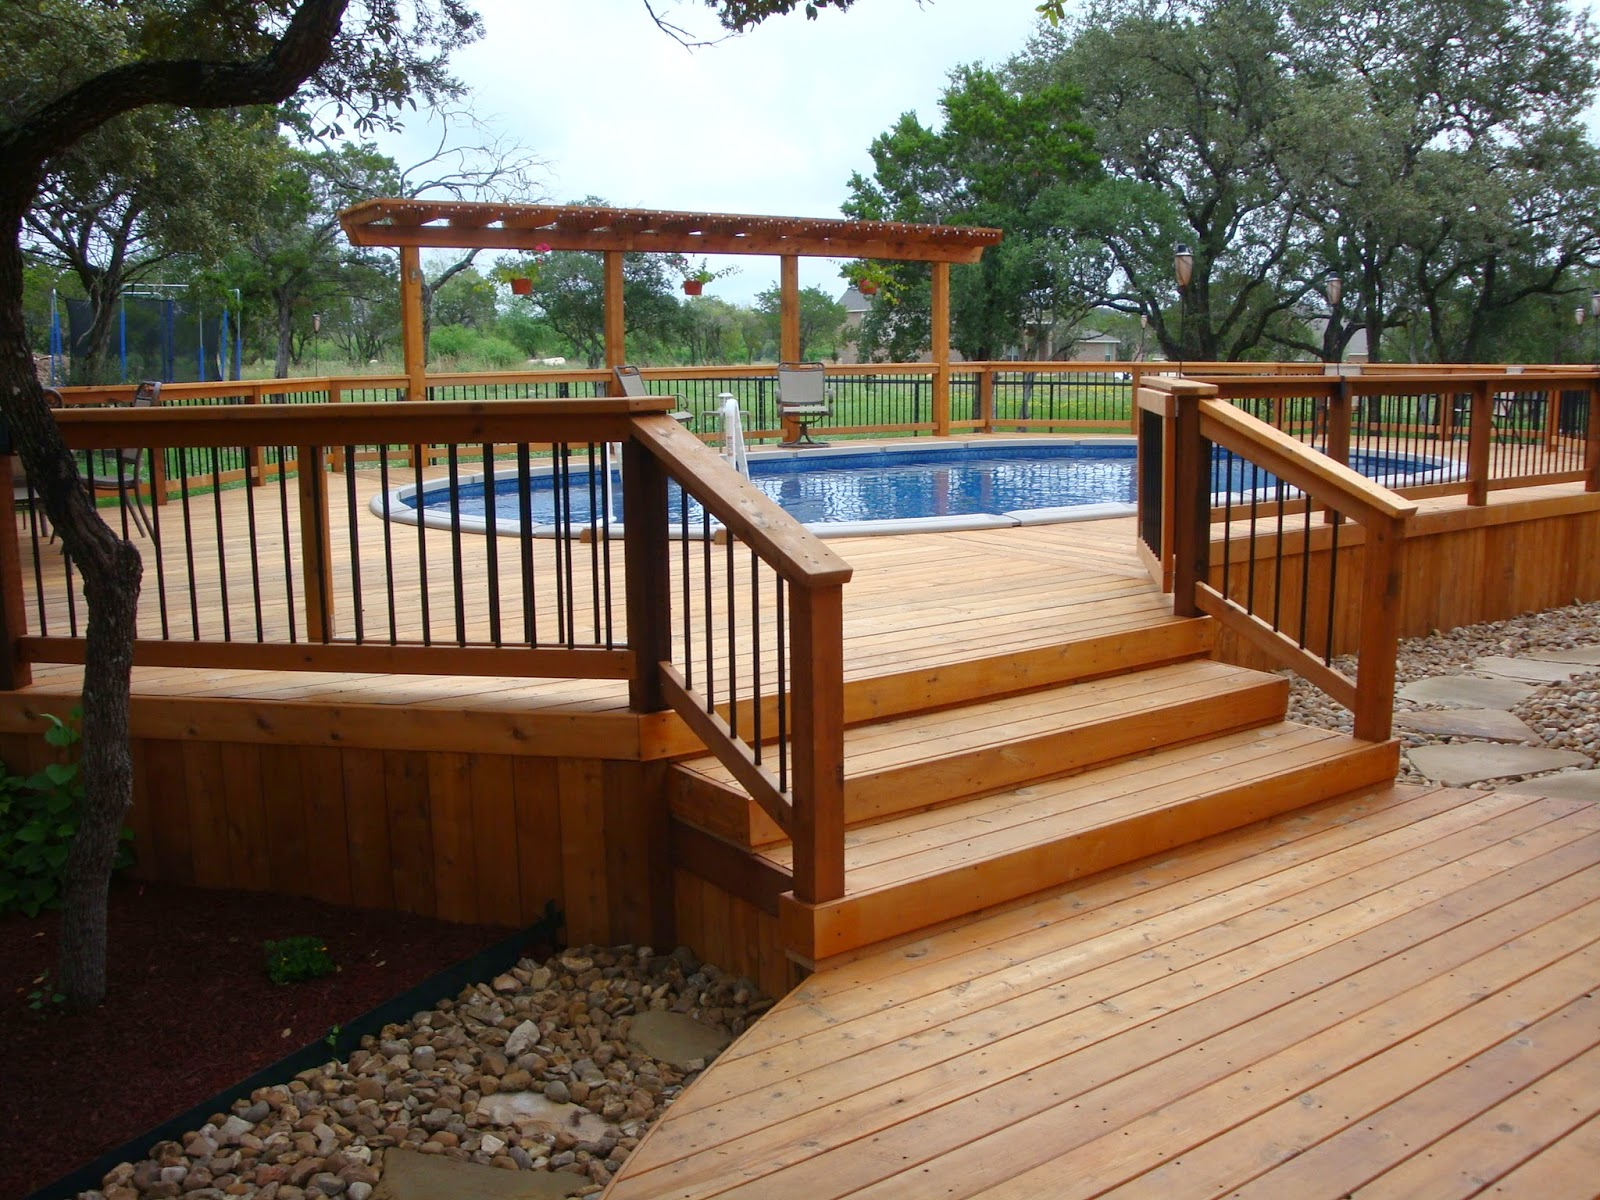 Wooden Decks Design Ideas Amazing Modern Pool Deck Design For Swimming Pool Design Ideas Interior Design